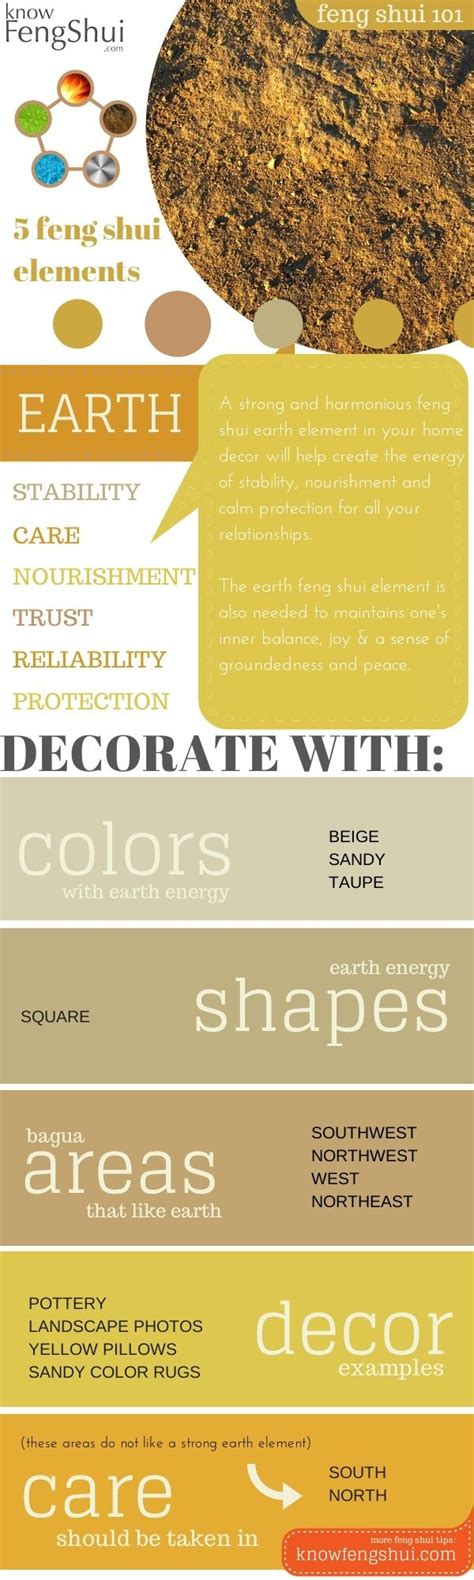 color feng shui which colors represent the earth deloufleur decor